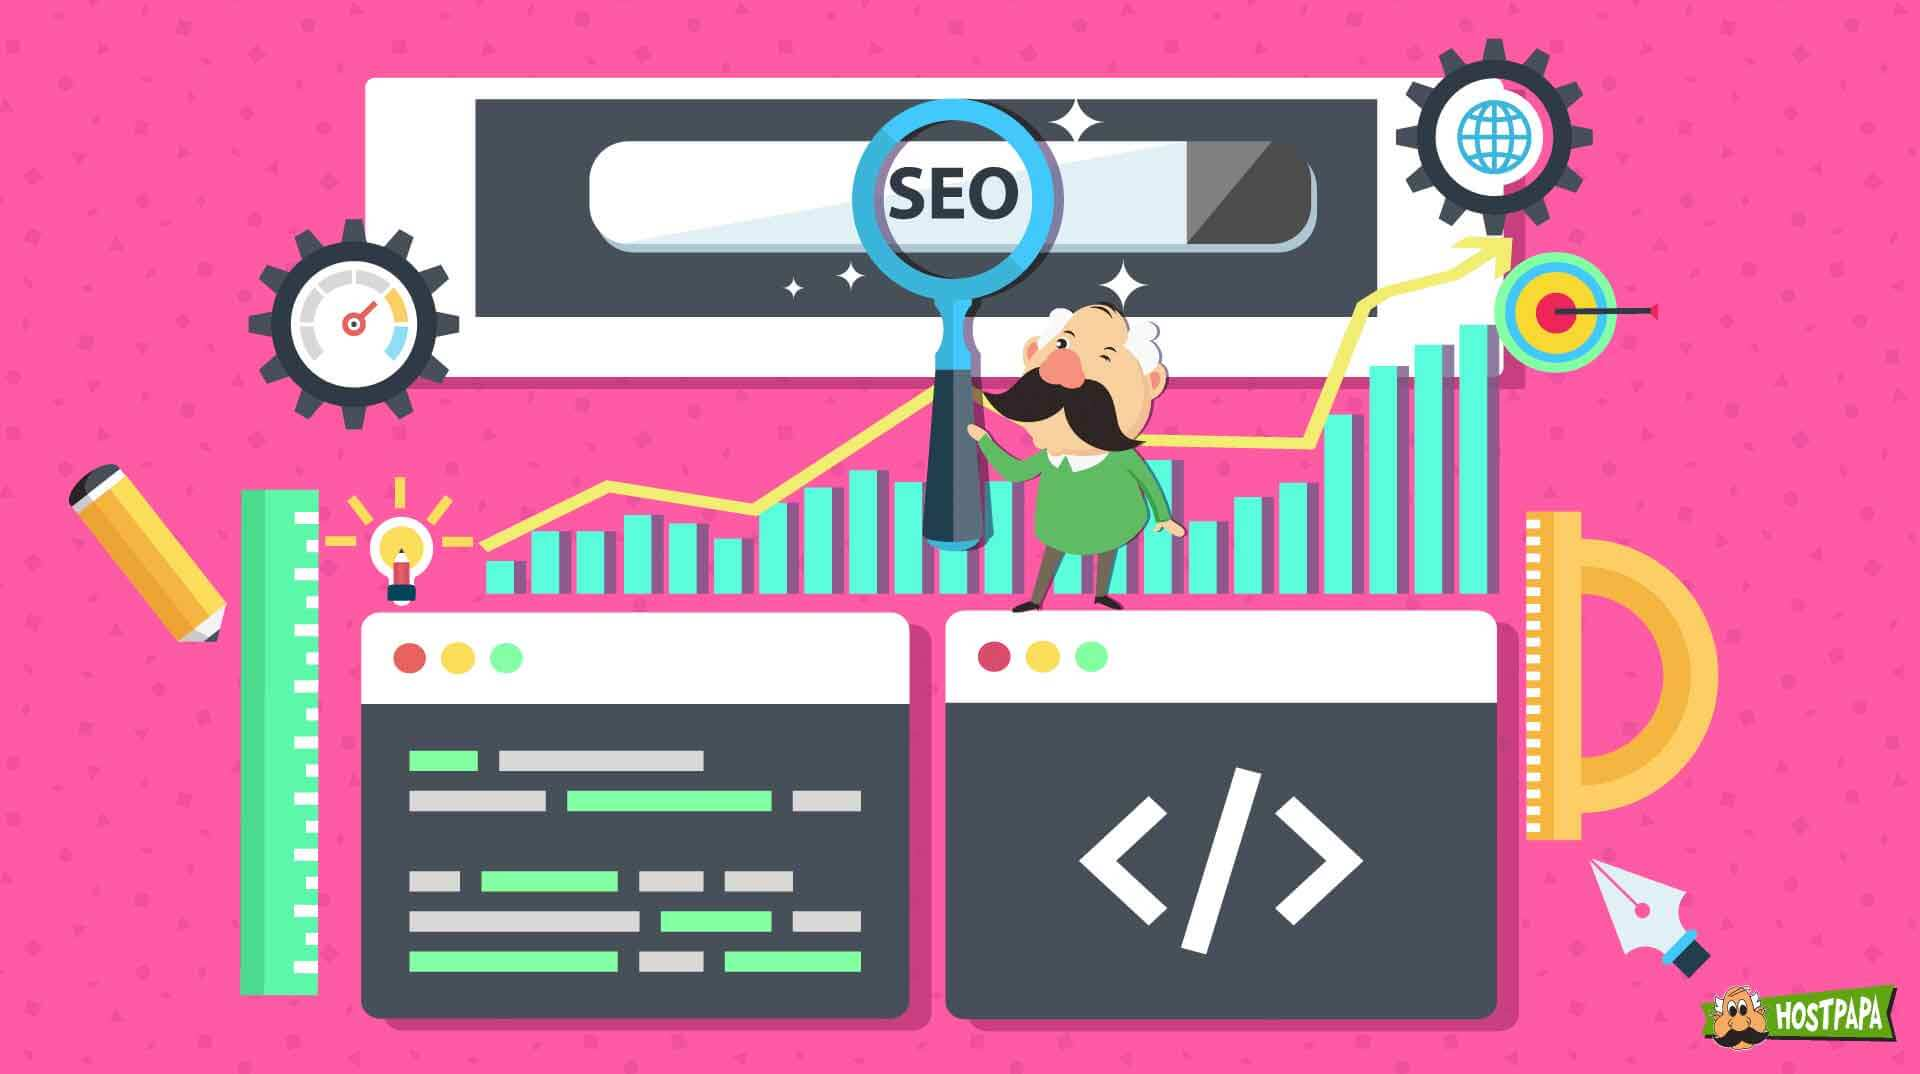 Web Design & SEO: 8 Things You Need to Take into Consideration